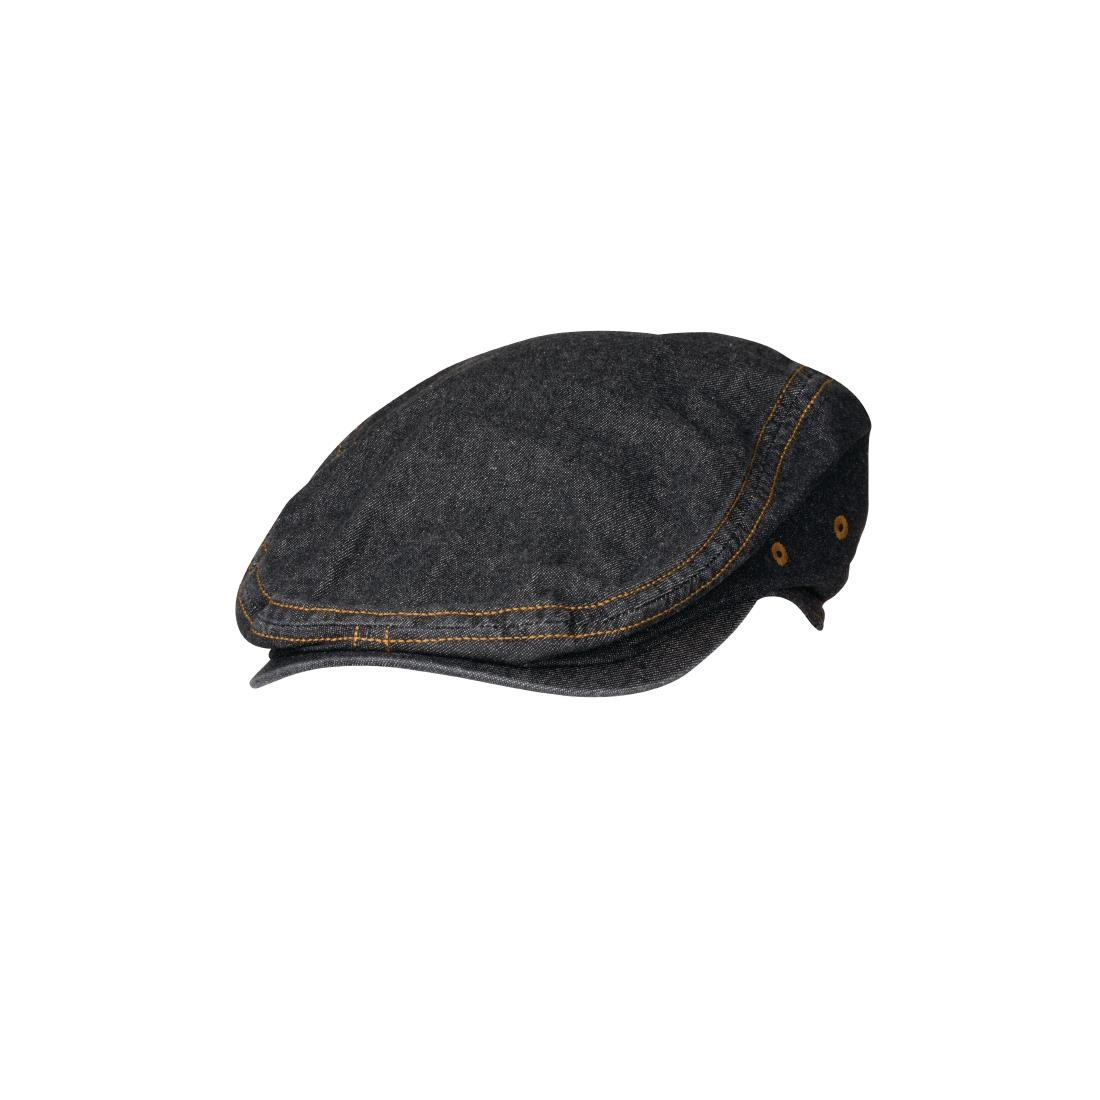 Image of Chef Works Urban Manhattan Flat Cap Black L-XL